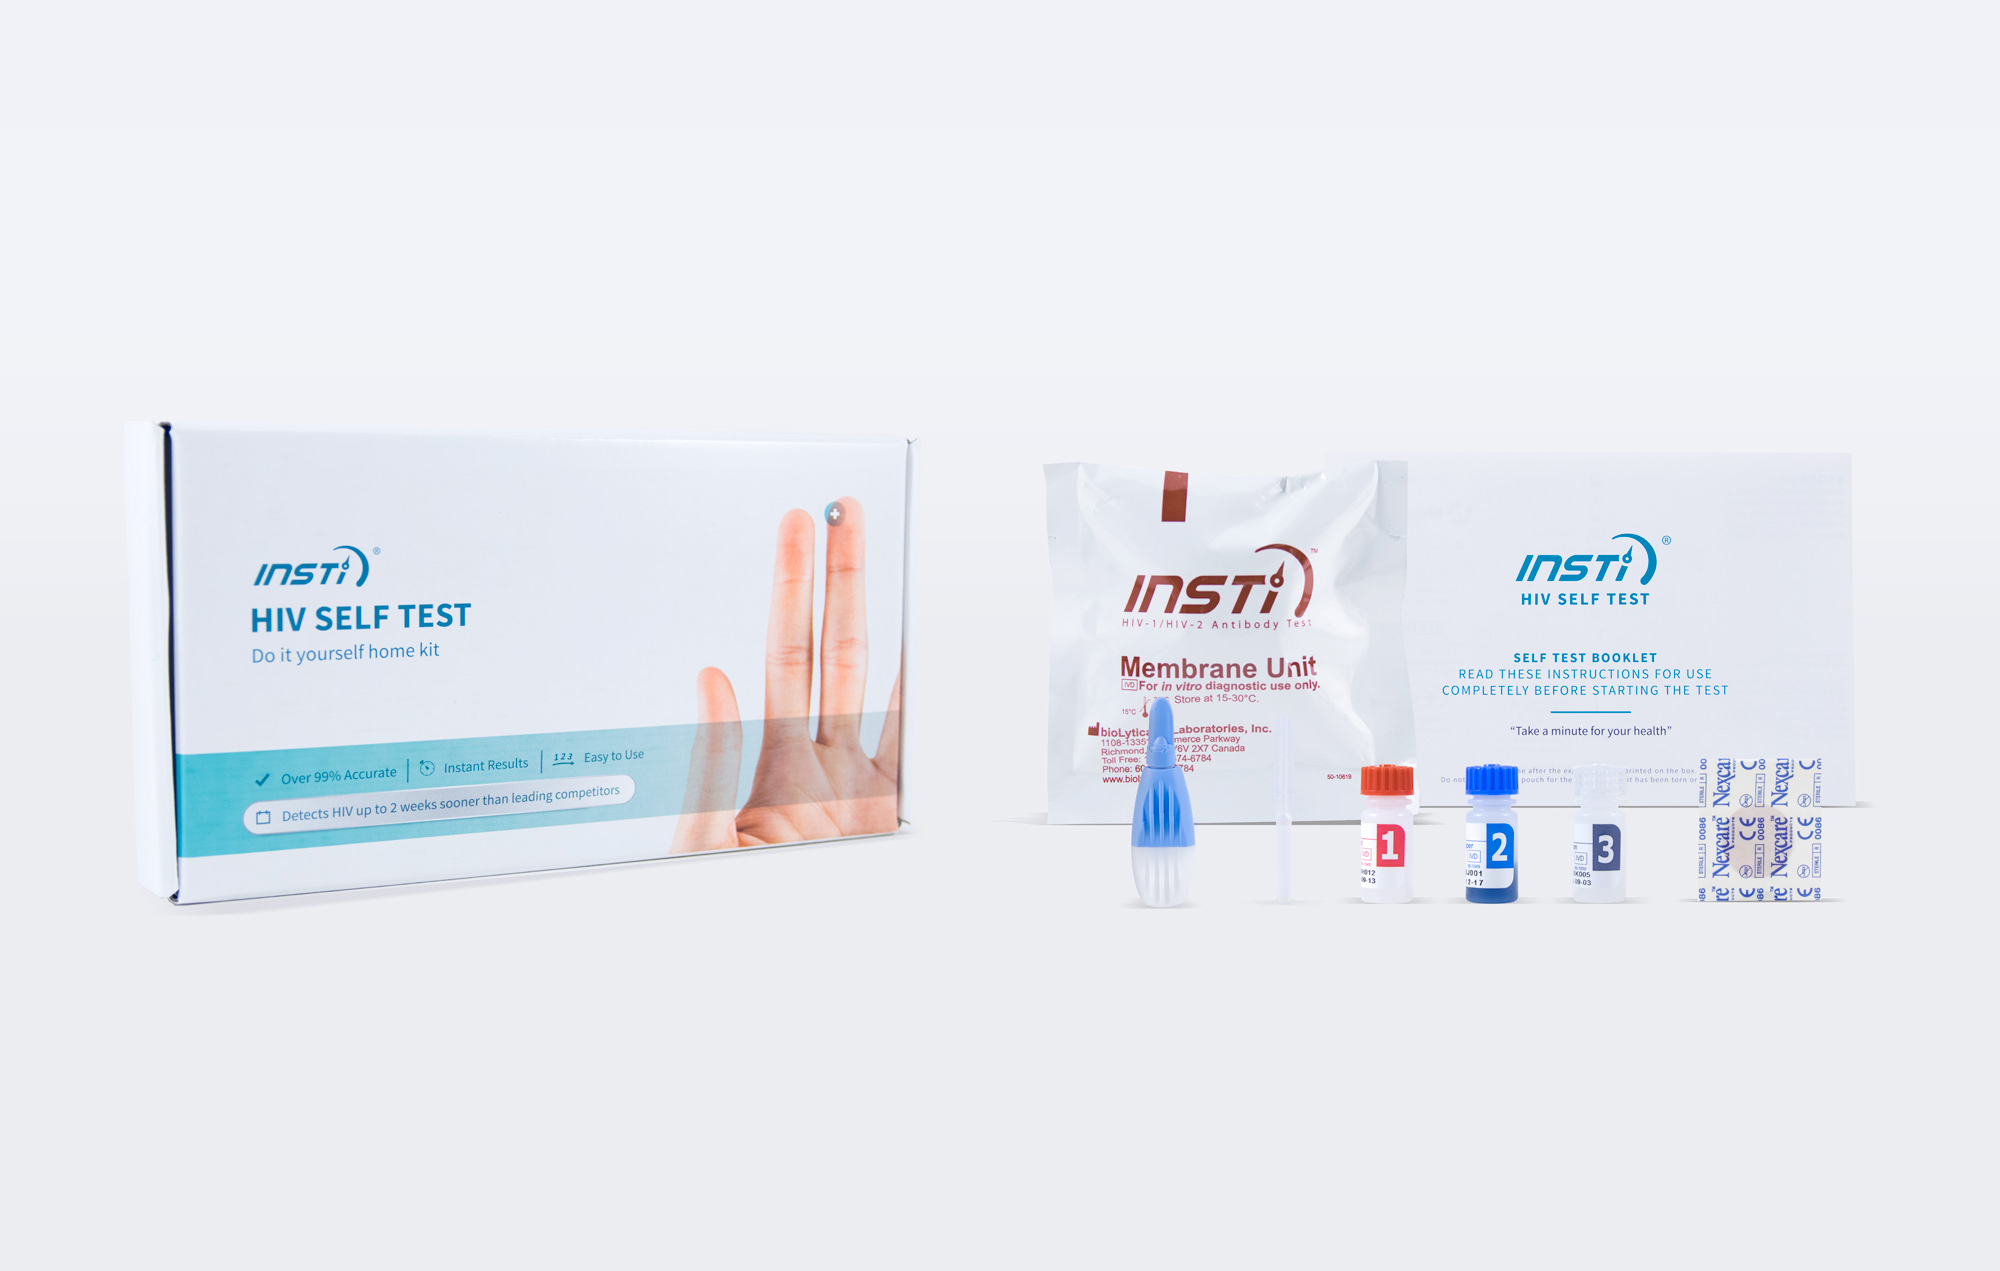 insti-hiv-self-test-2